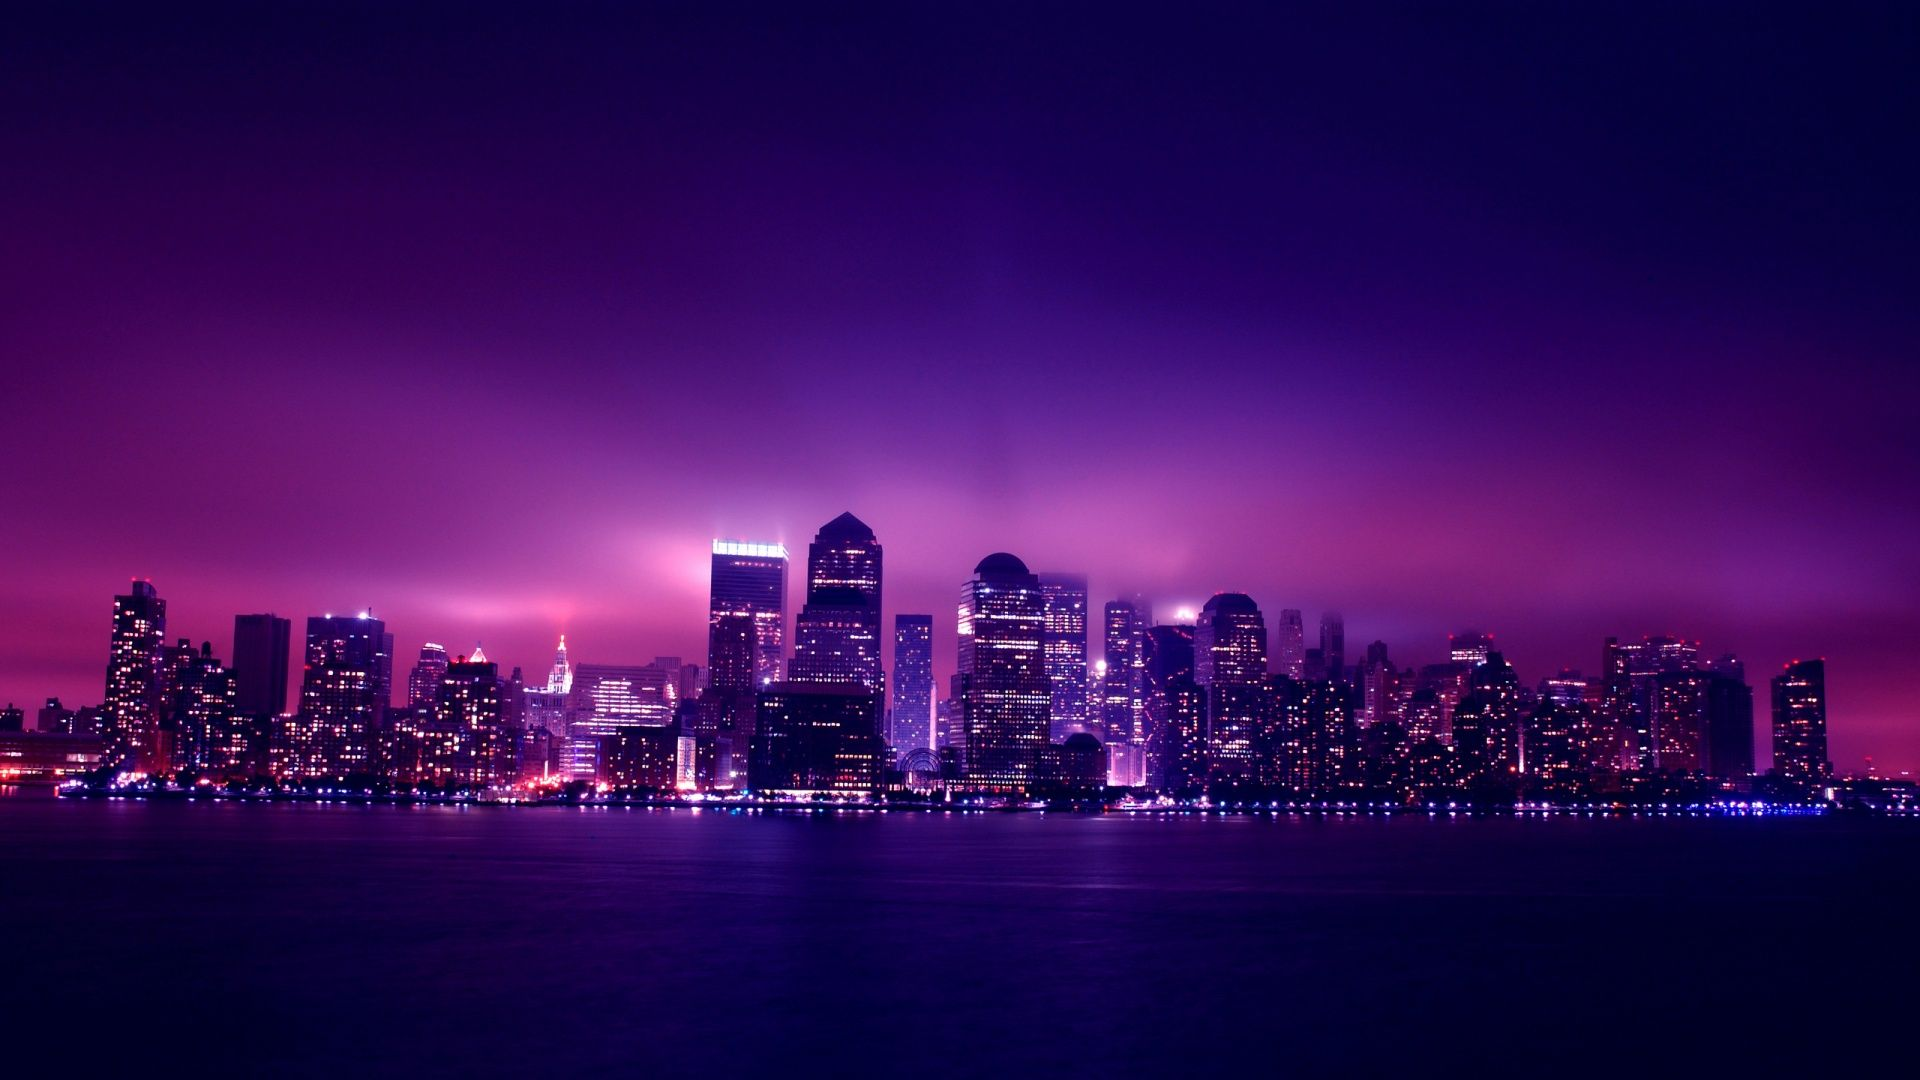 Wallpaper Collection 37 Best Free Hd Desktop Backgrounds 1920x1080 Background To Download In 2020 Night City Landscape Wallpaper Purple City